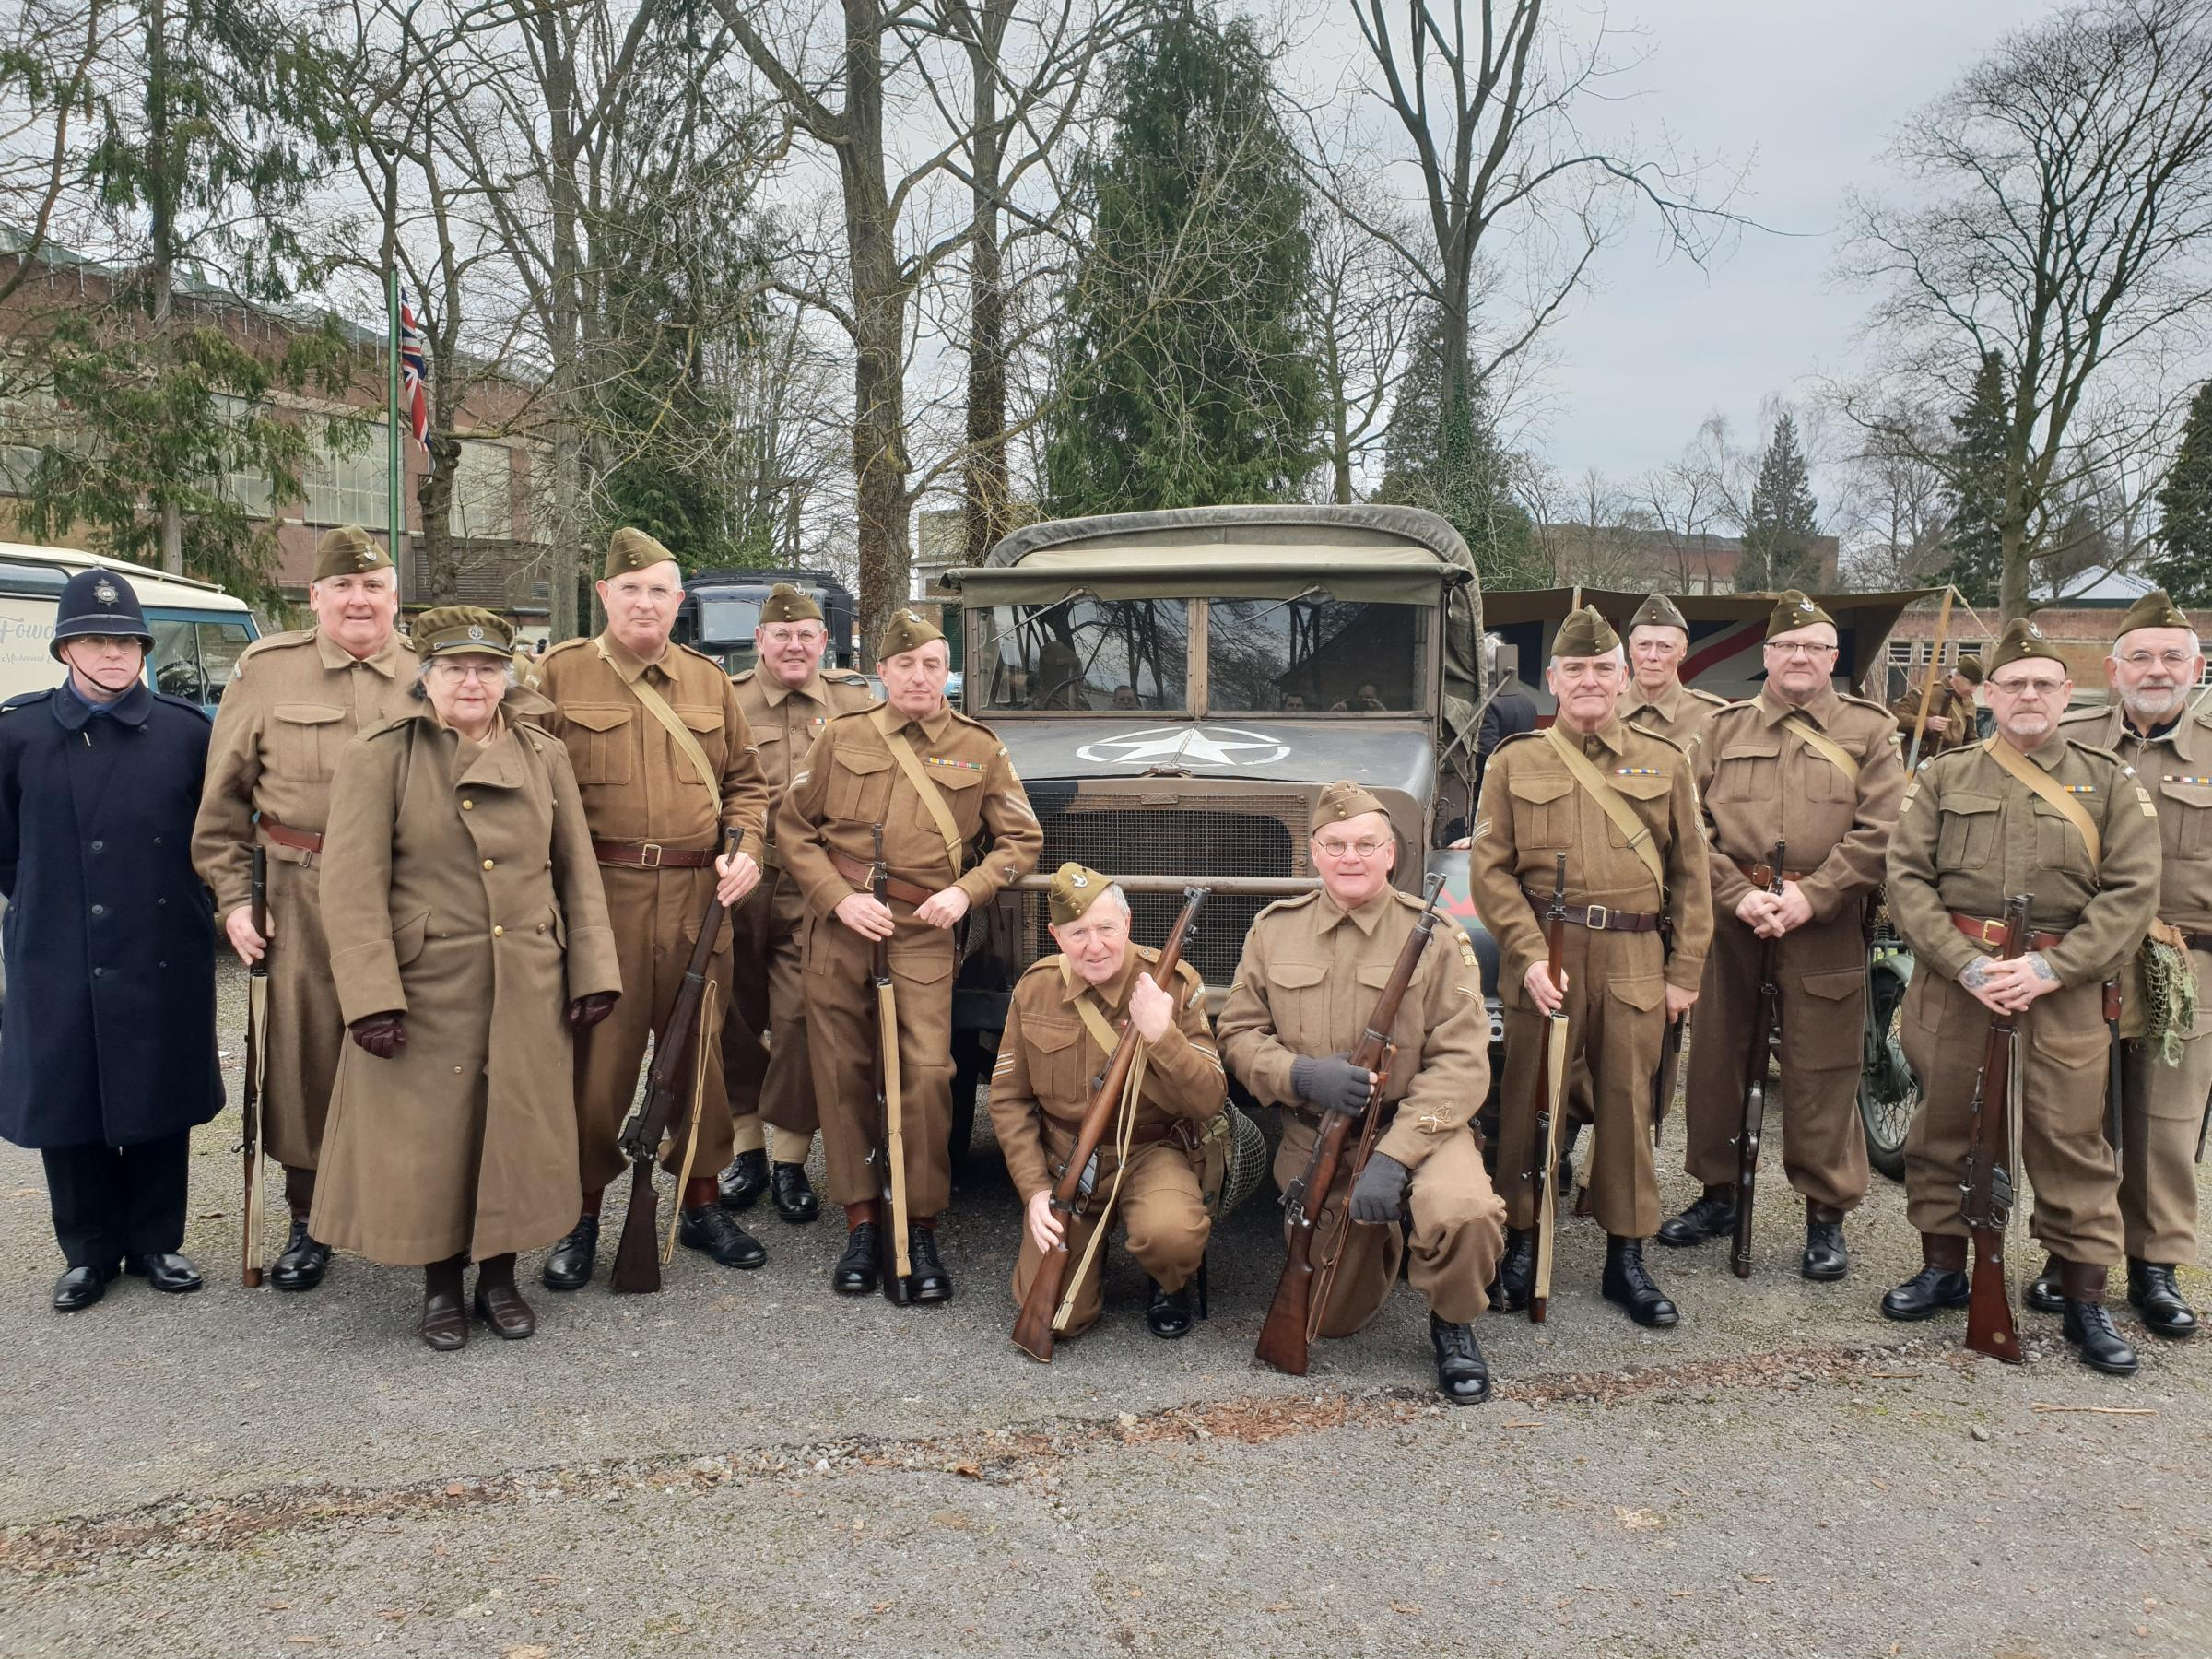 Oxfordshire Home Guard and Home Front History Group